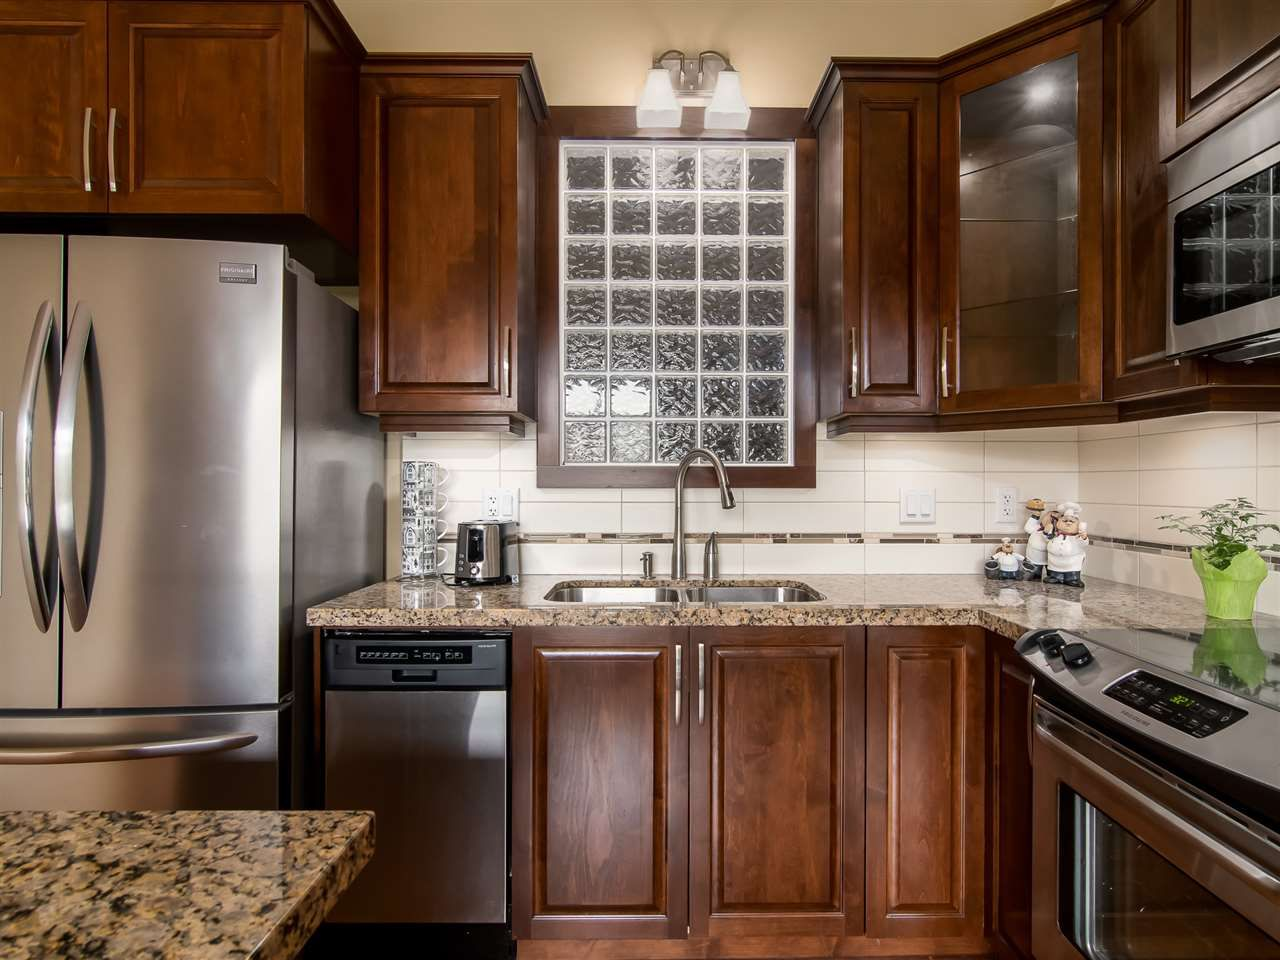 """Main Photo: 523 8288 207A Street in Langley: Willoughby Heights Condo for sale in """"Yorkson Creek Walnut Ridge 2"""" : MLS®# R2546058"""